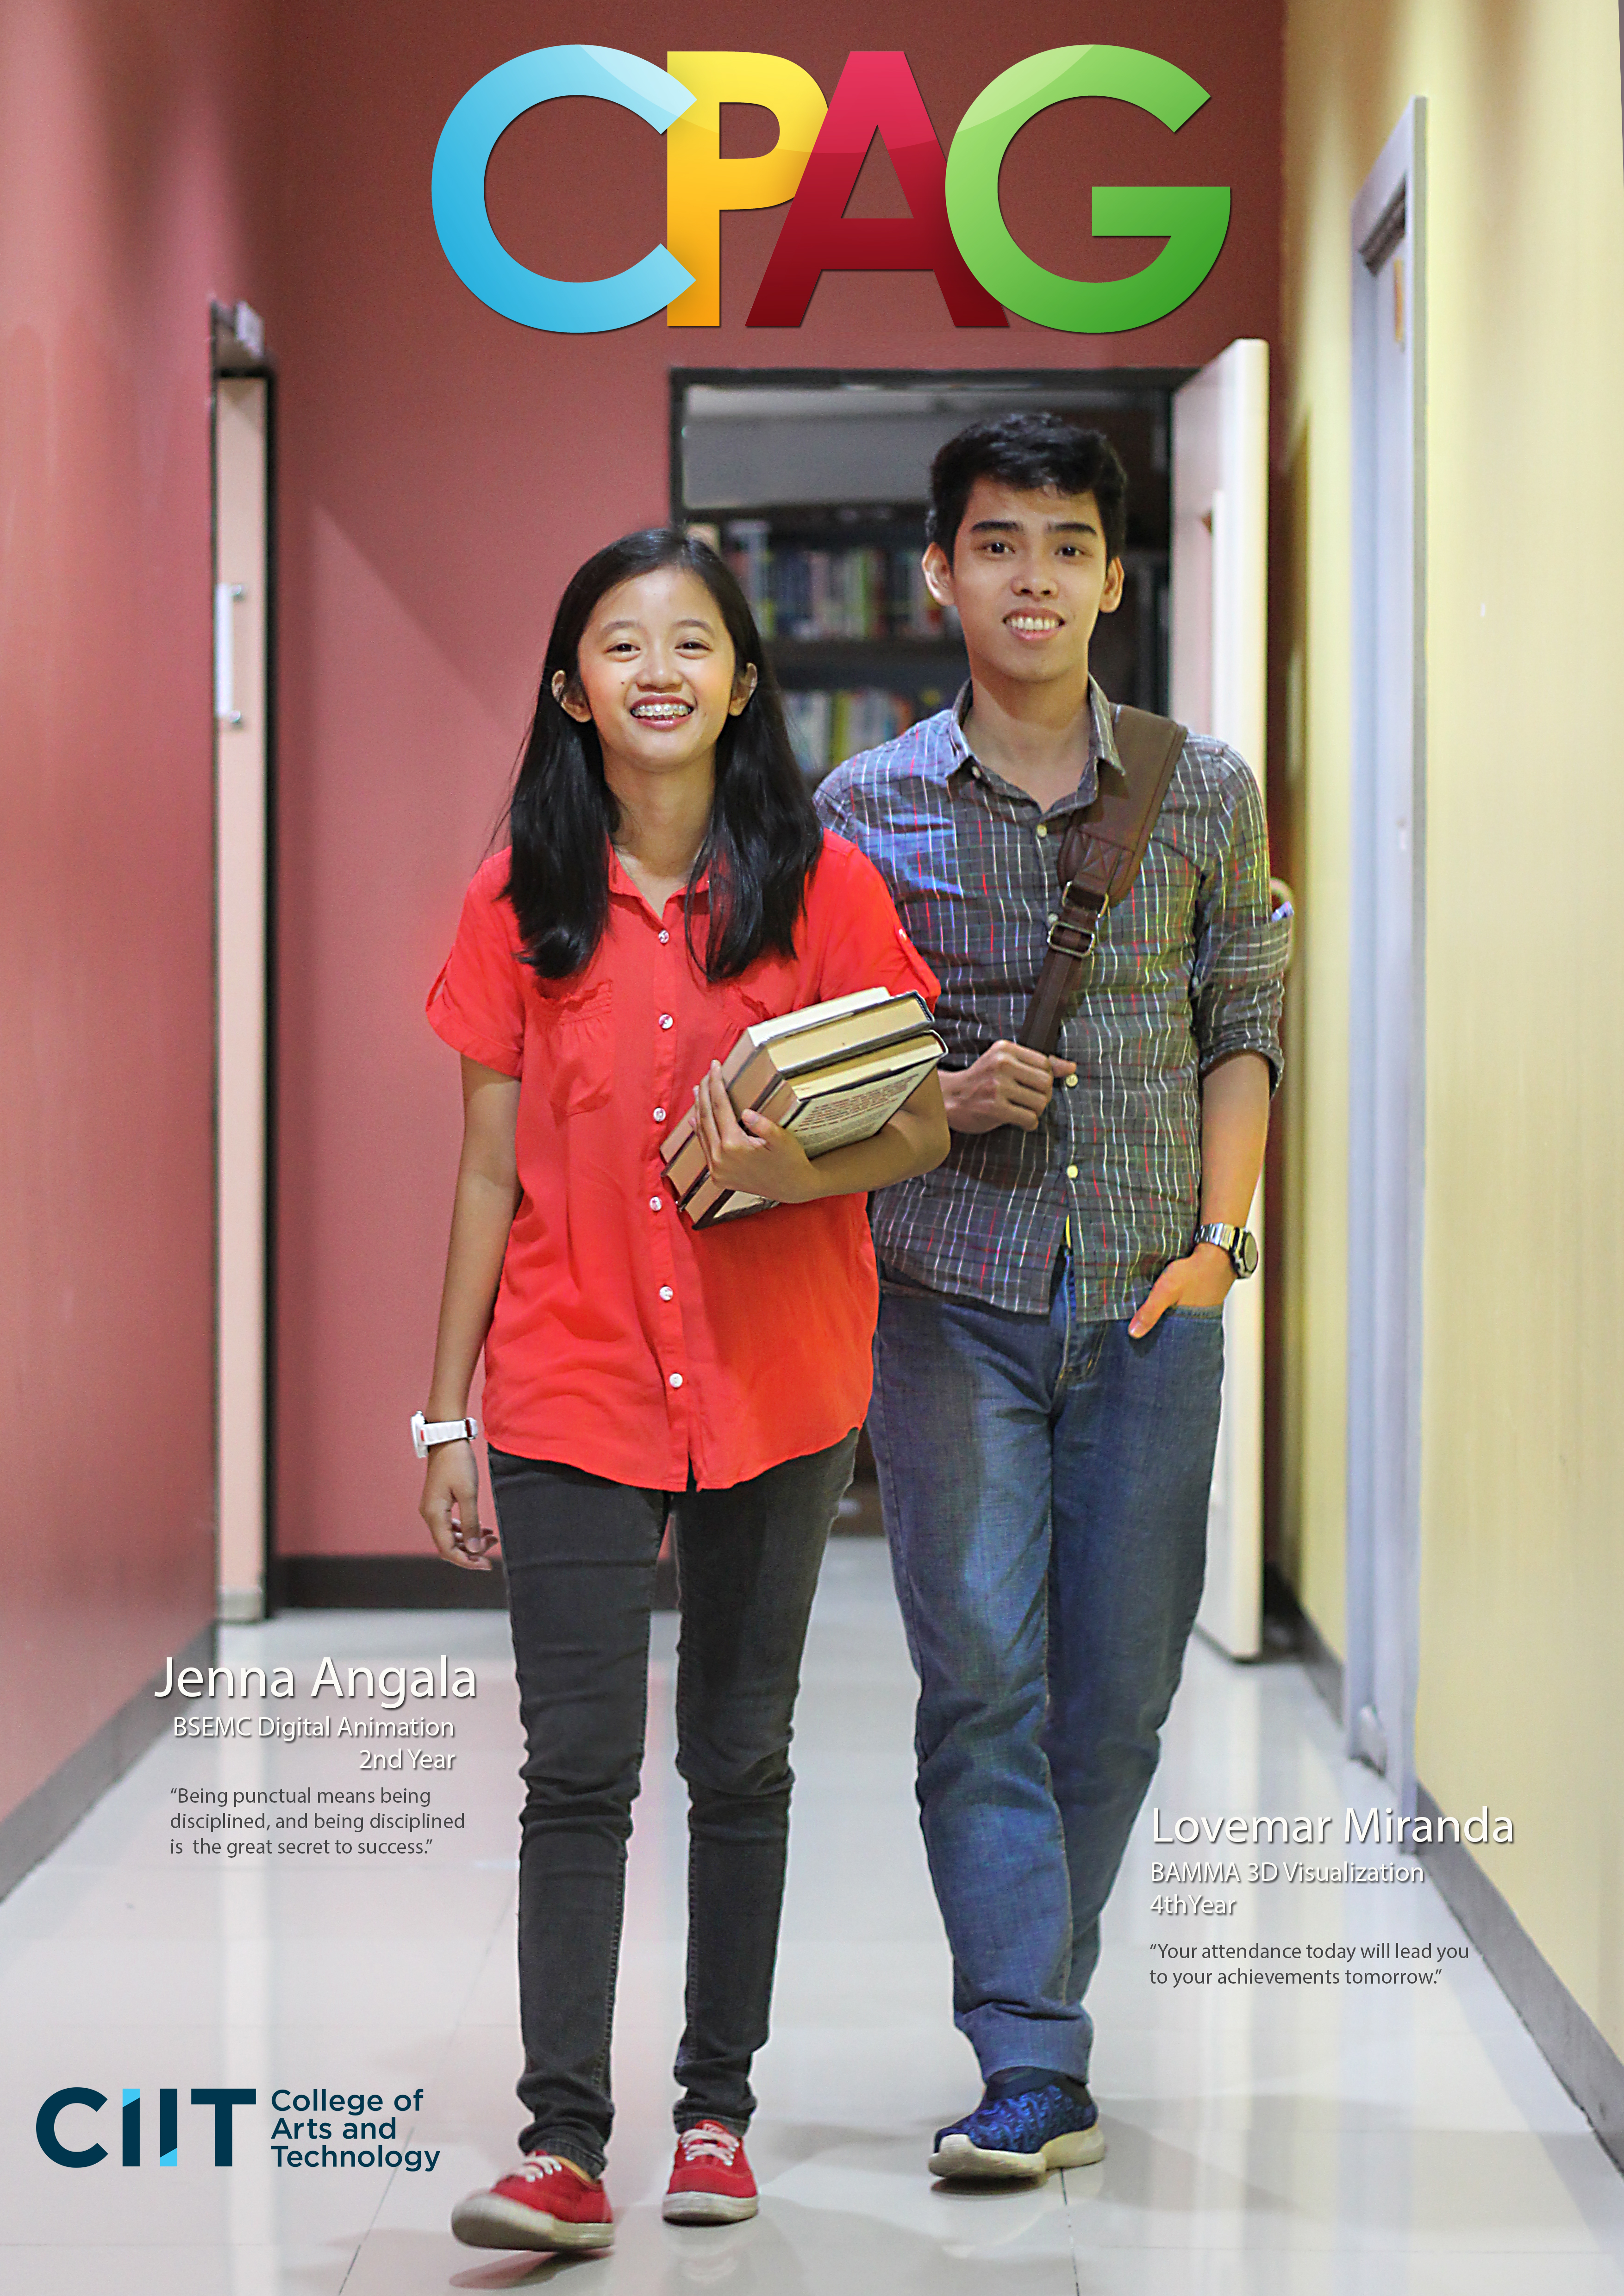 cpag campaign: walking students